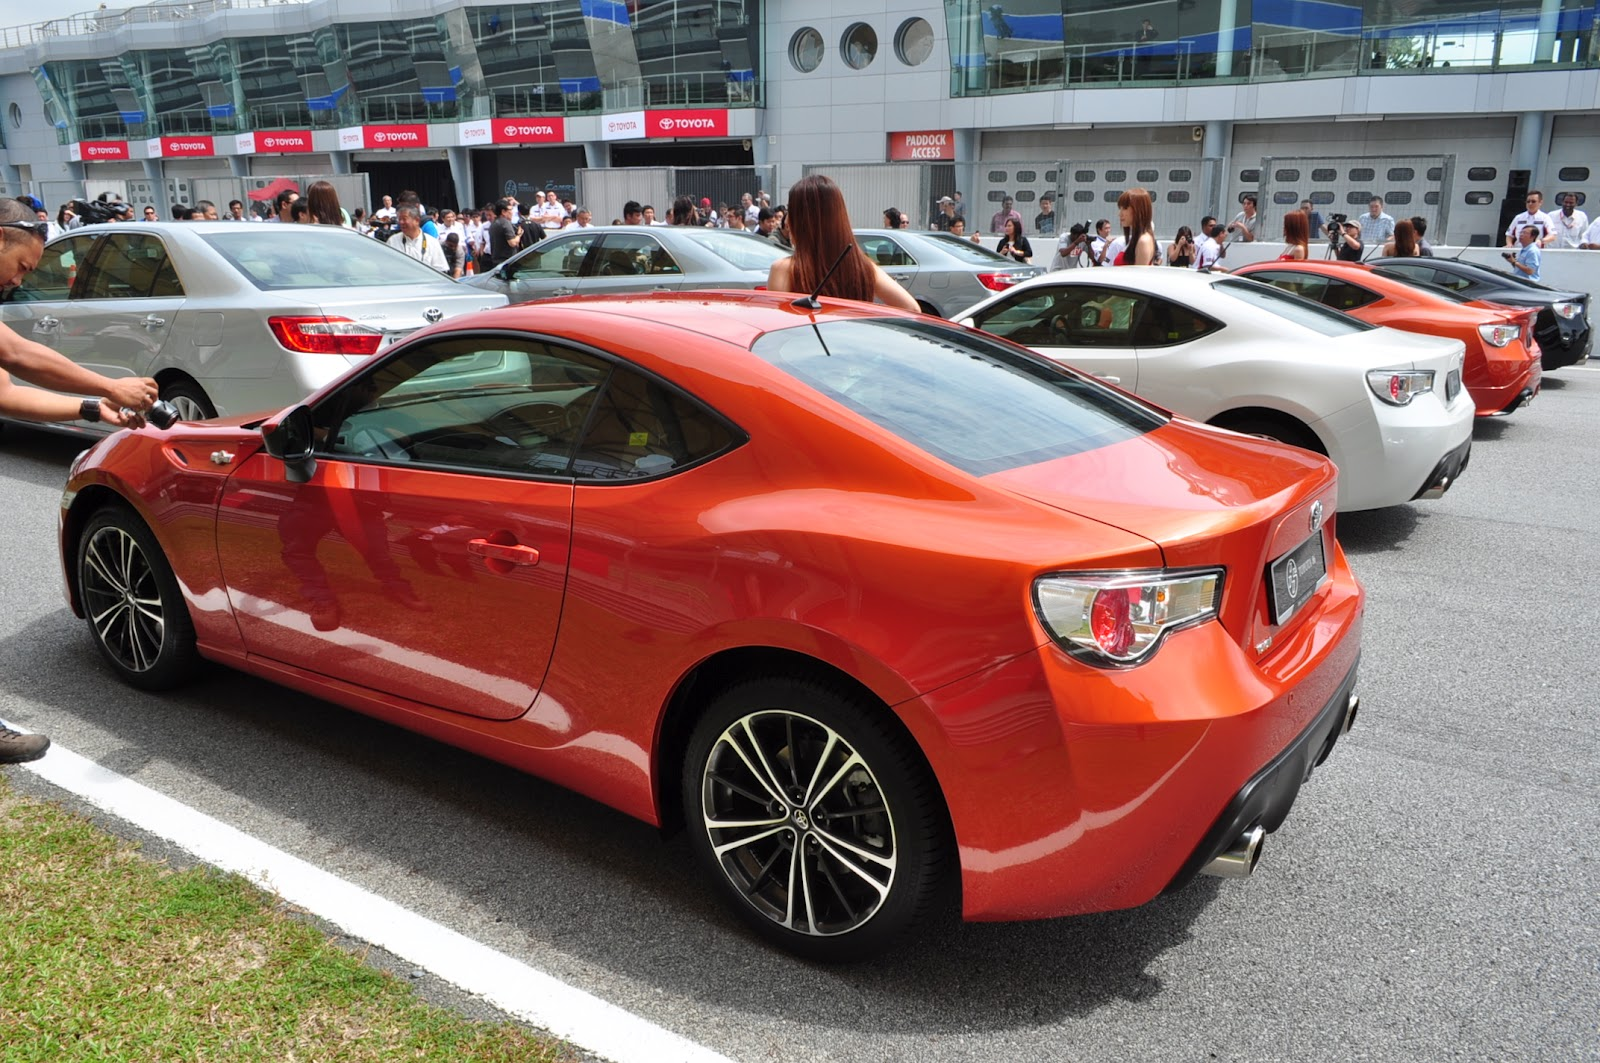 Auto Insider Malaysia Your Inside Scoop For The Car Enthusiast